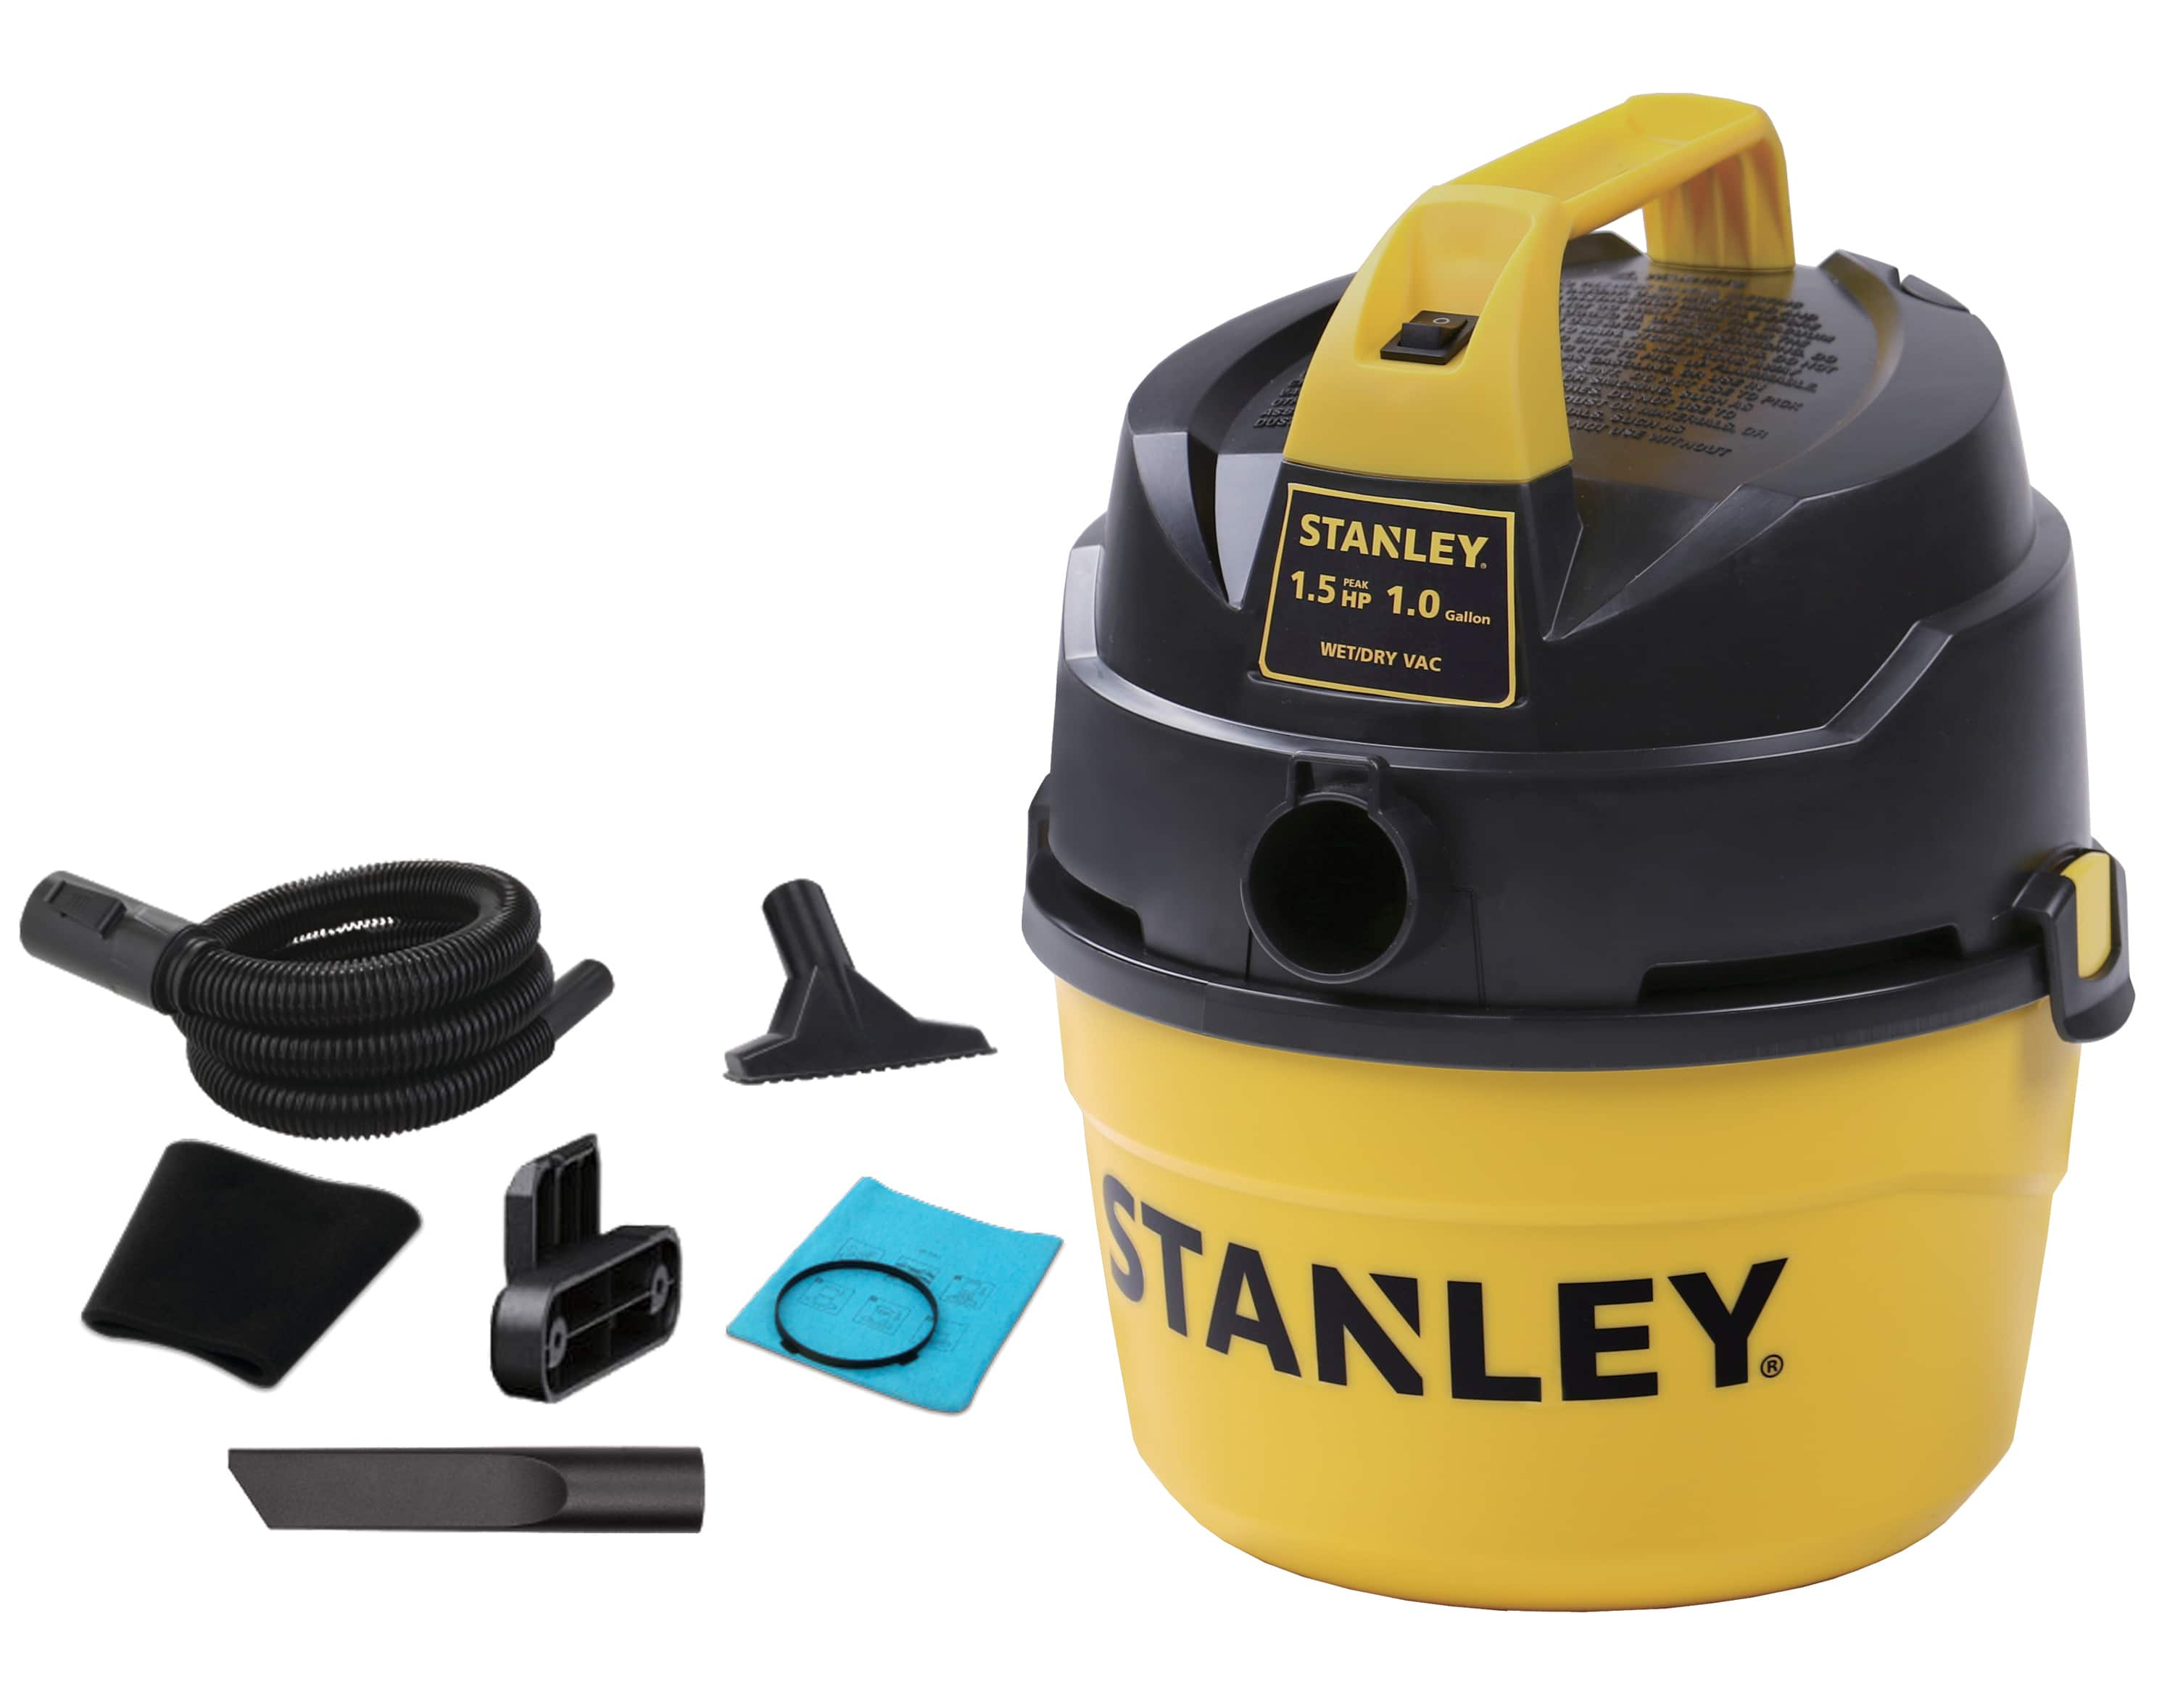 Walmart: YMMV - Stanley Wet/Dry Vacuum, 1 Gallon, 1.5 Horsepower: $5 in-store only (clearance)